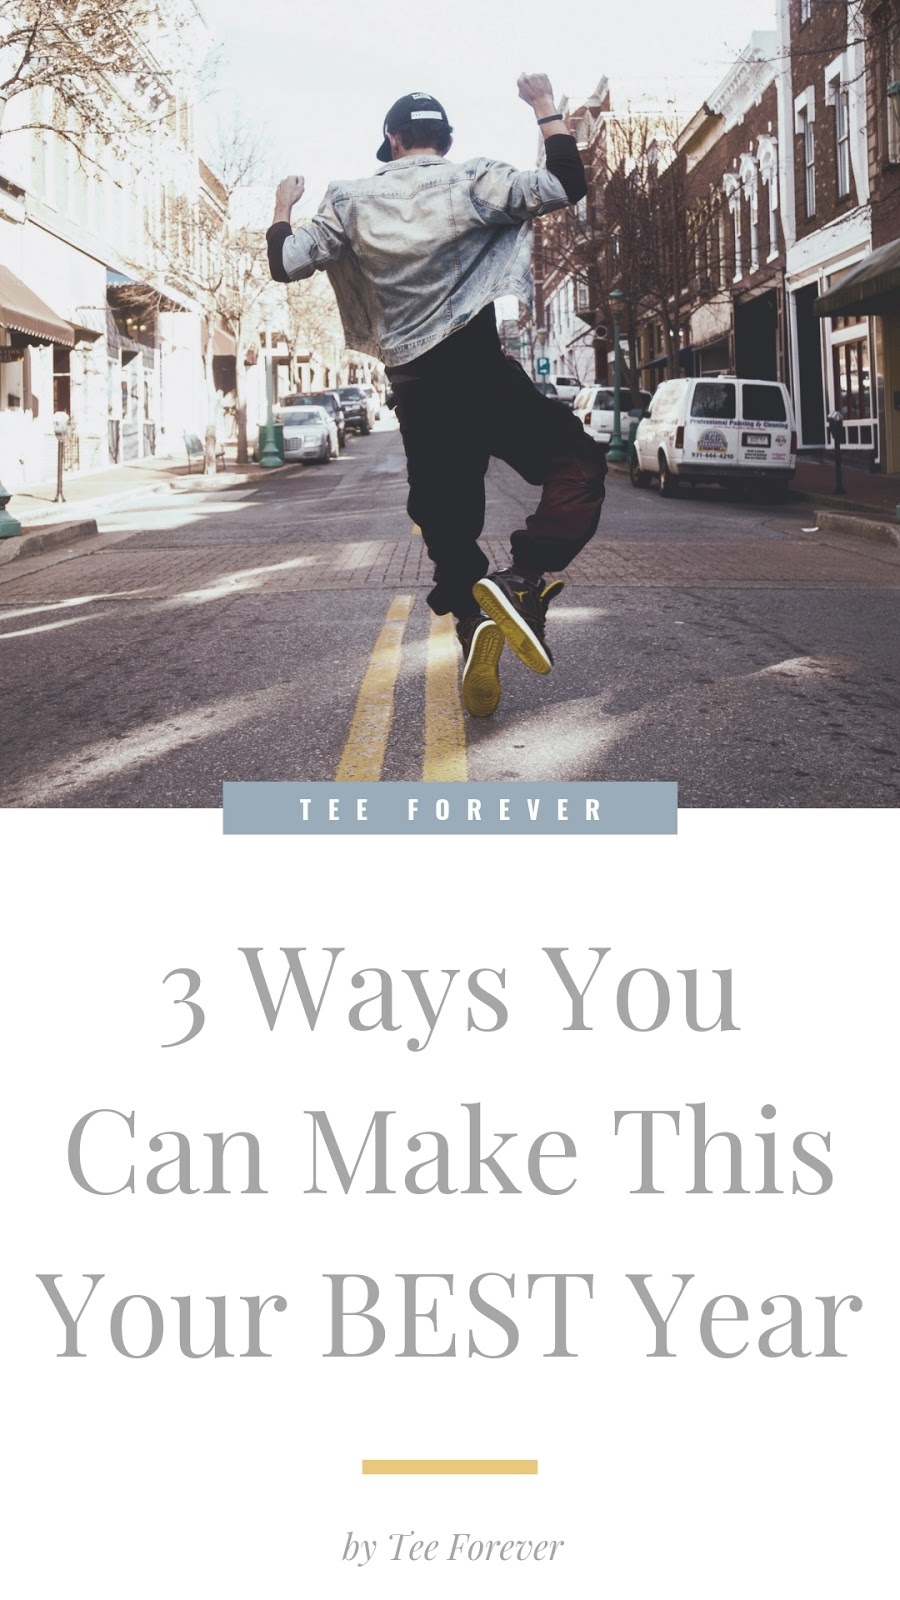 3 Ways You Can Make This Your BEST Year